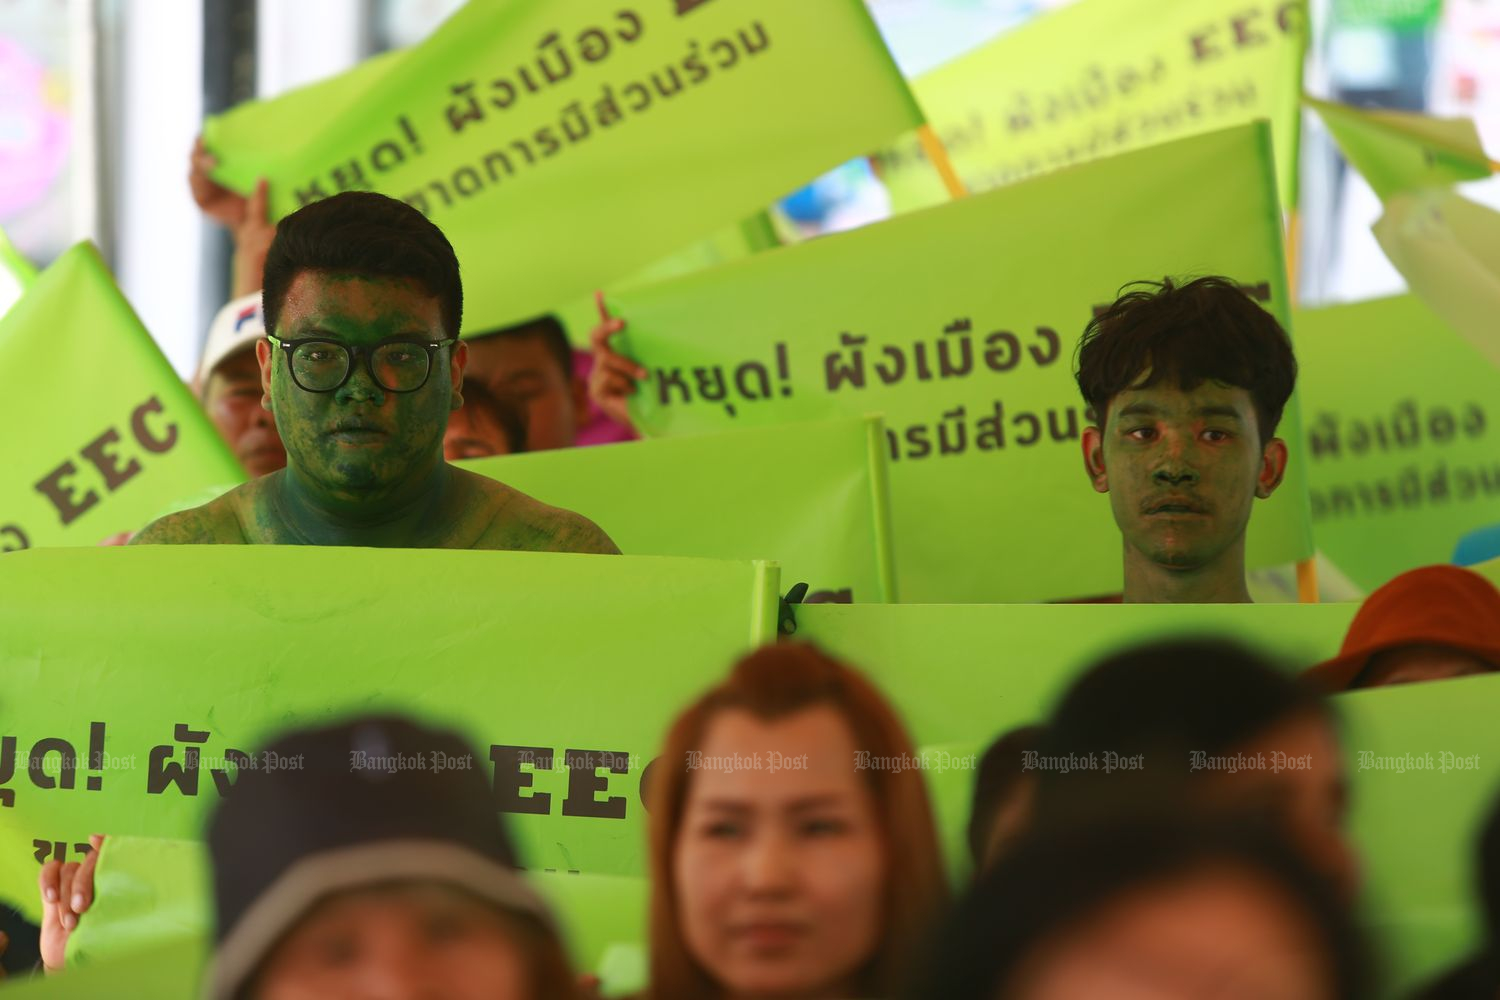 Members of the Friends of the East Network arrive in Bangkok on July 23 to complain to the prime minister about land use planning for the Eastern Economic Corridor. (Photo by Somchai Poomlard)